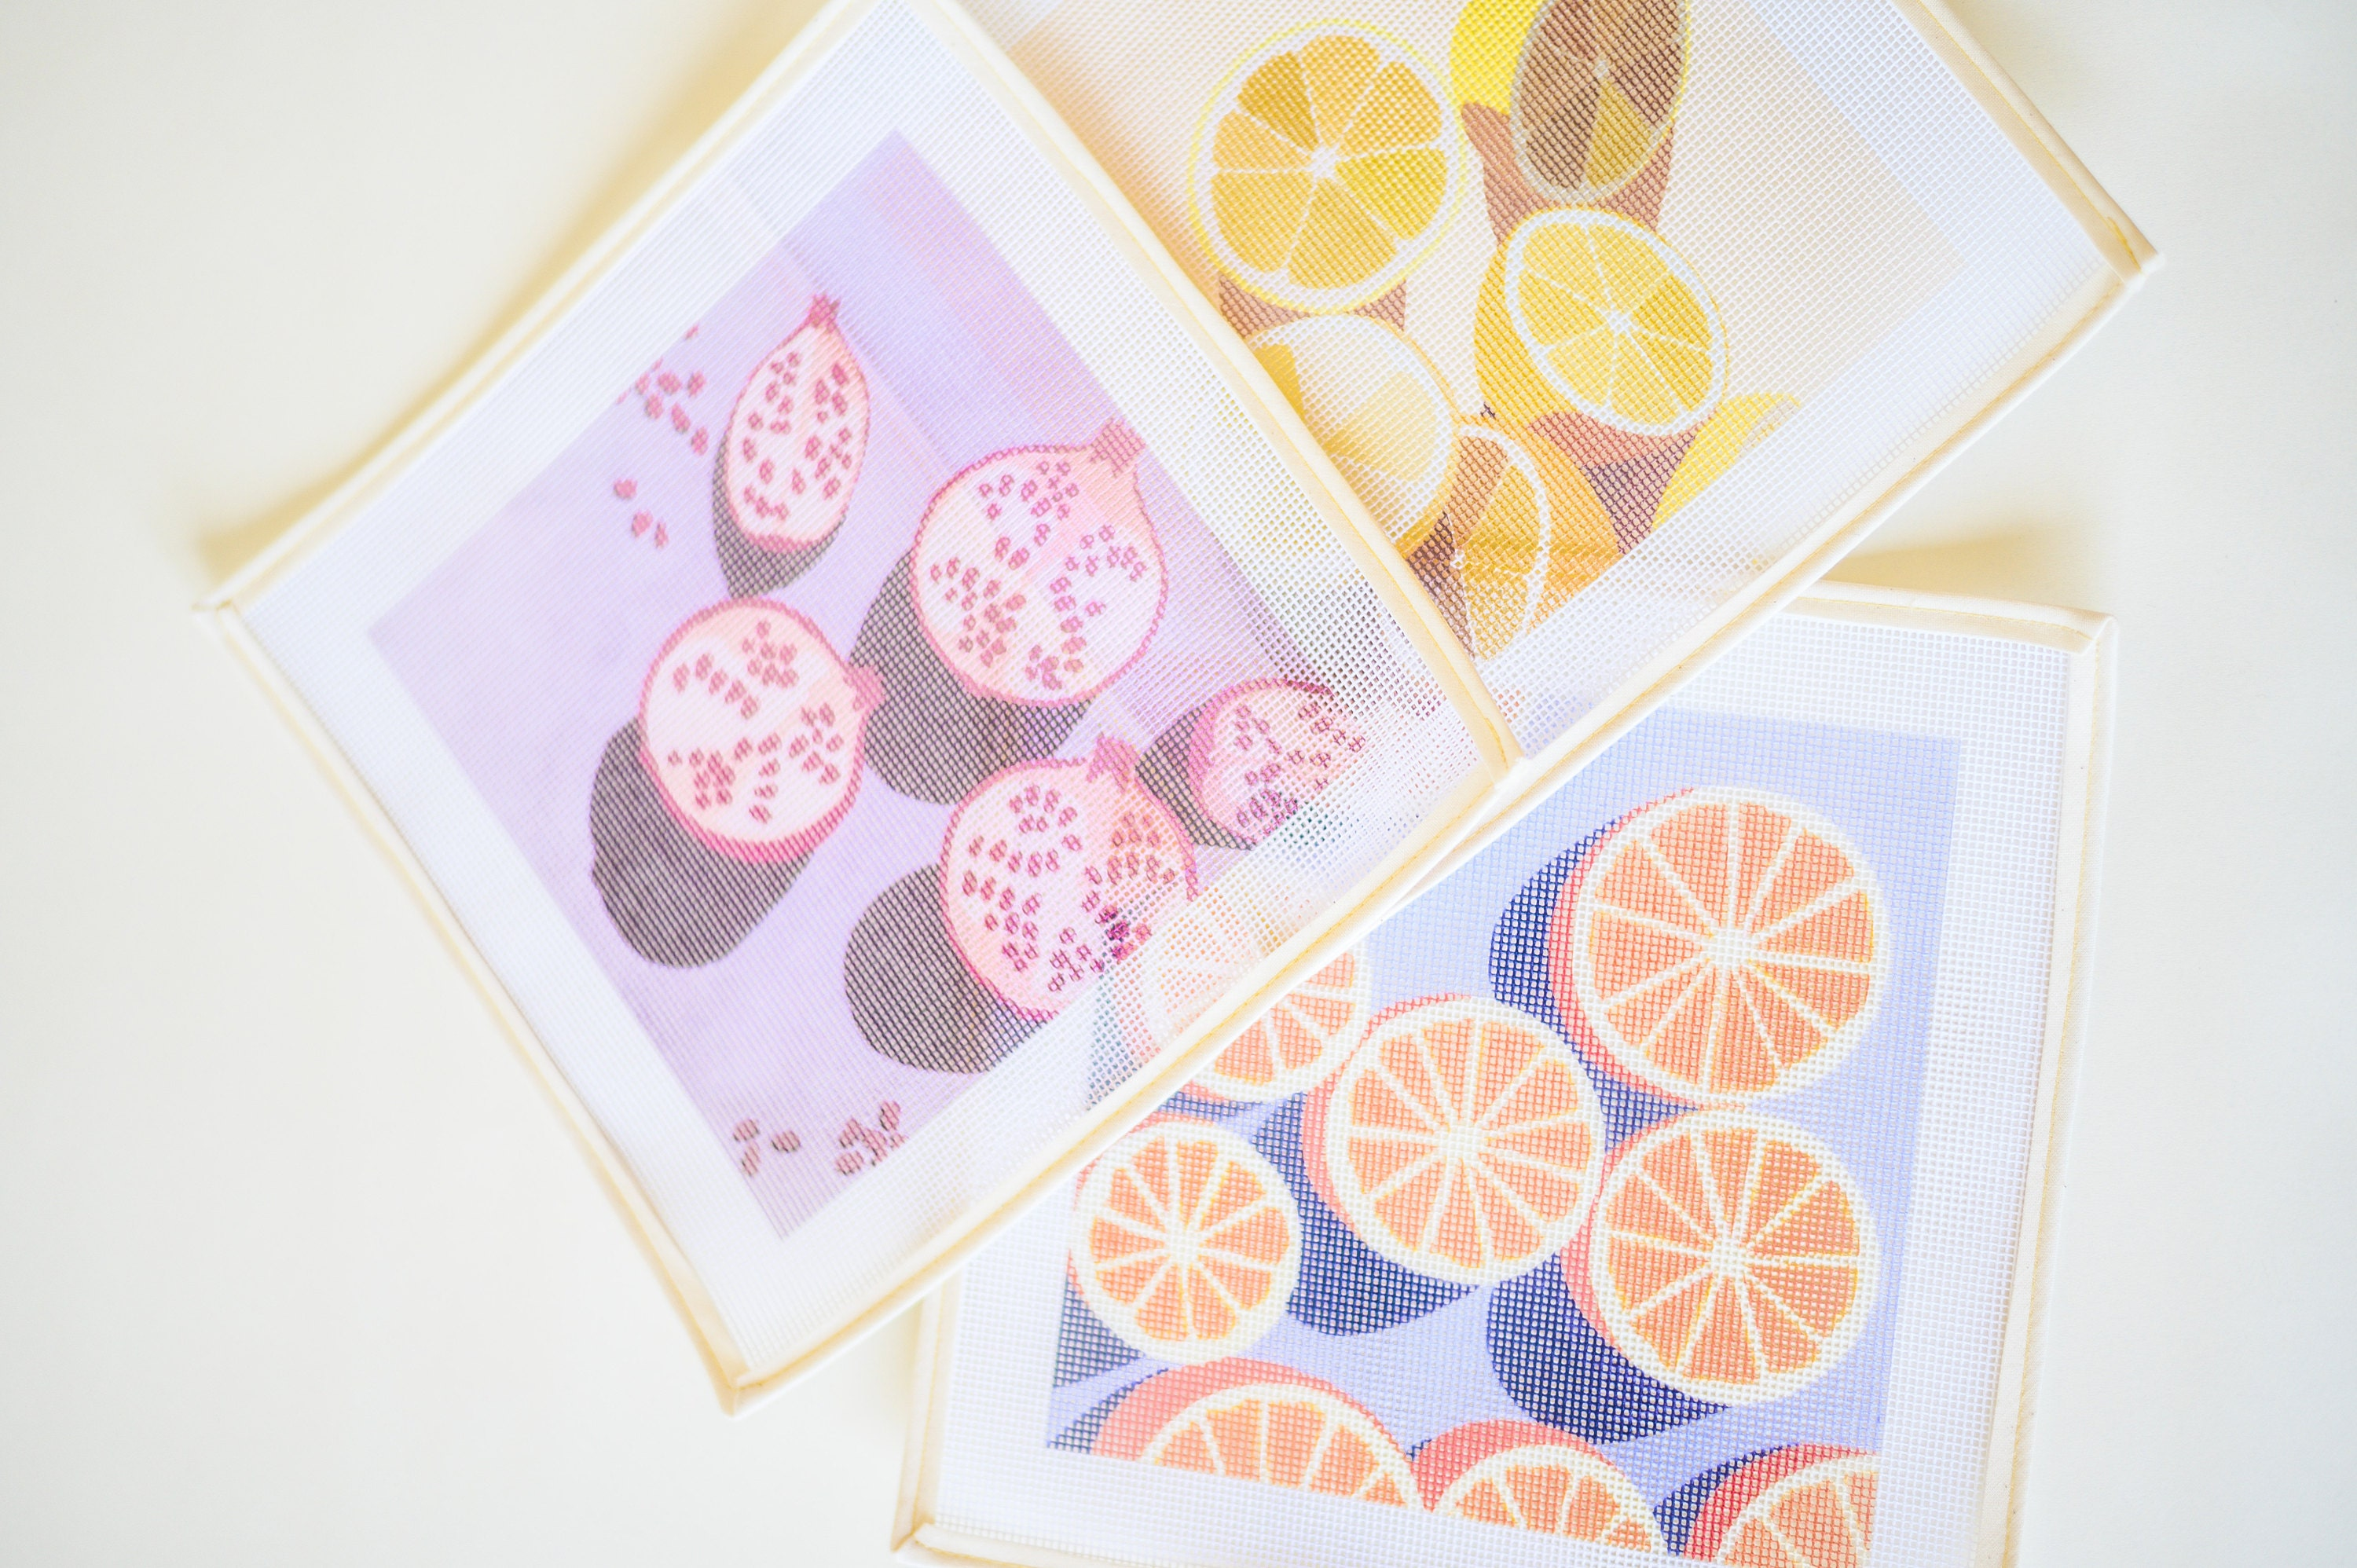 Pomegranates, Oranges and Lemons printed needlepoint canvases from Unwind Studio designed by Laura Croft, Ana Popescu and Anca Putin